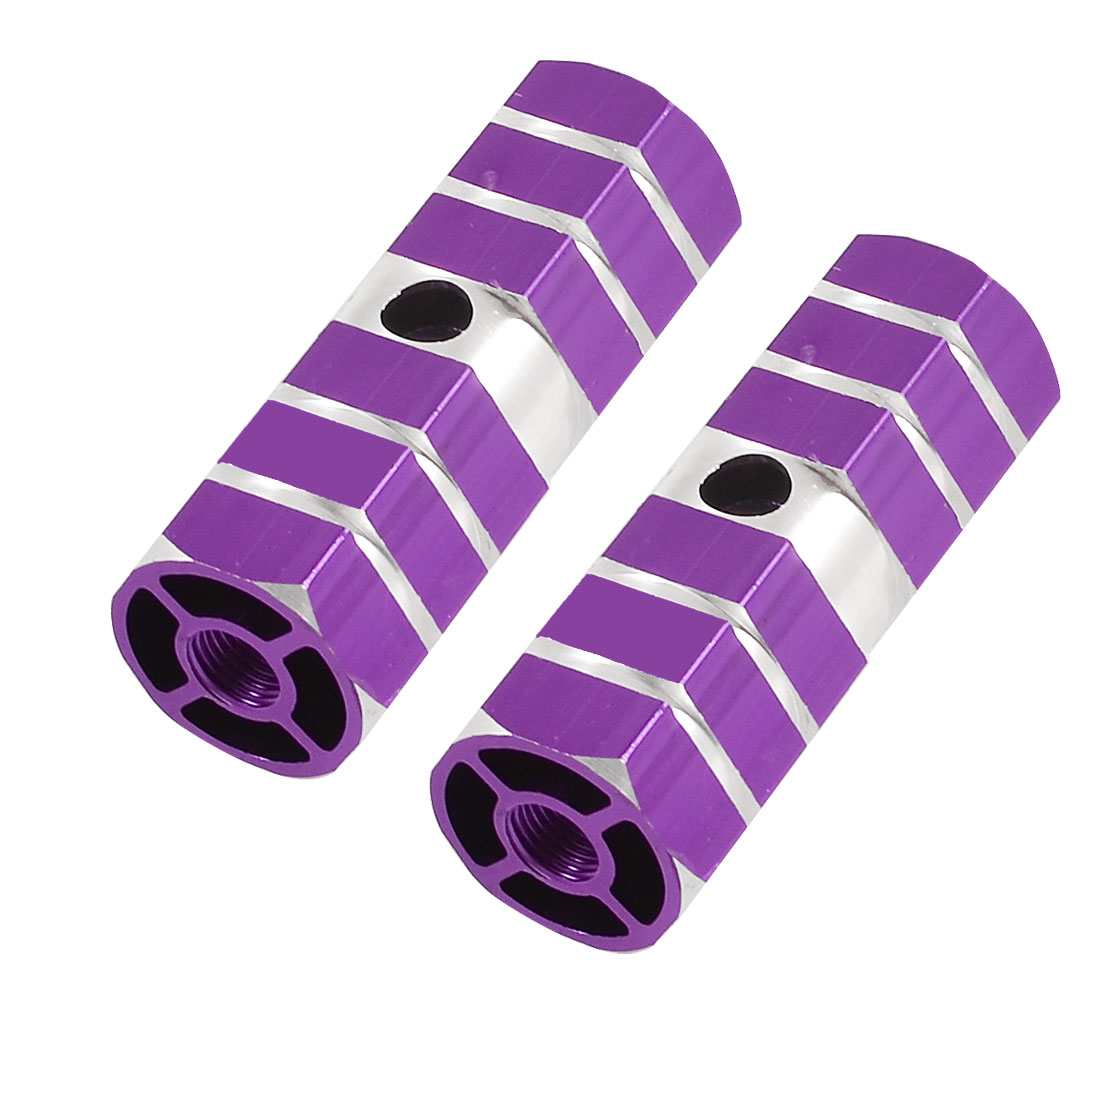 Purple Silver Tone Antislip Bicycle Front Rear Axle Foot Pegs 2 Pcs